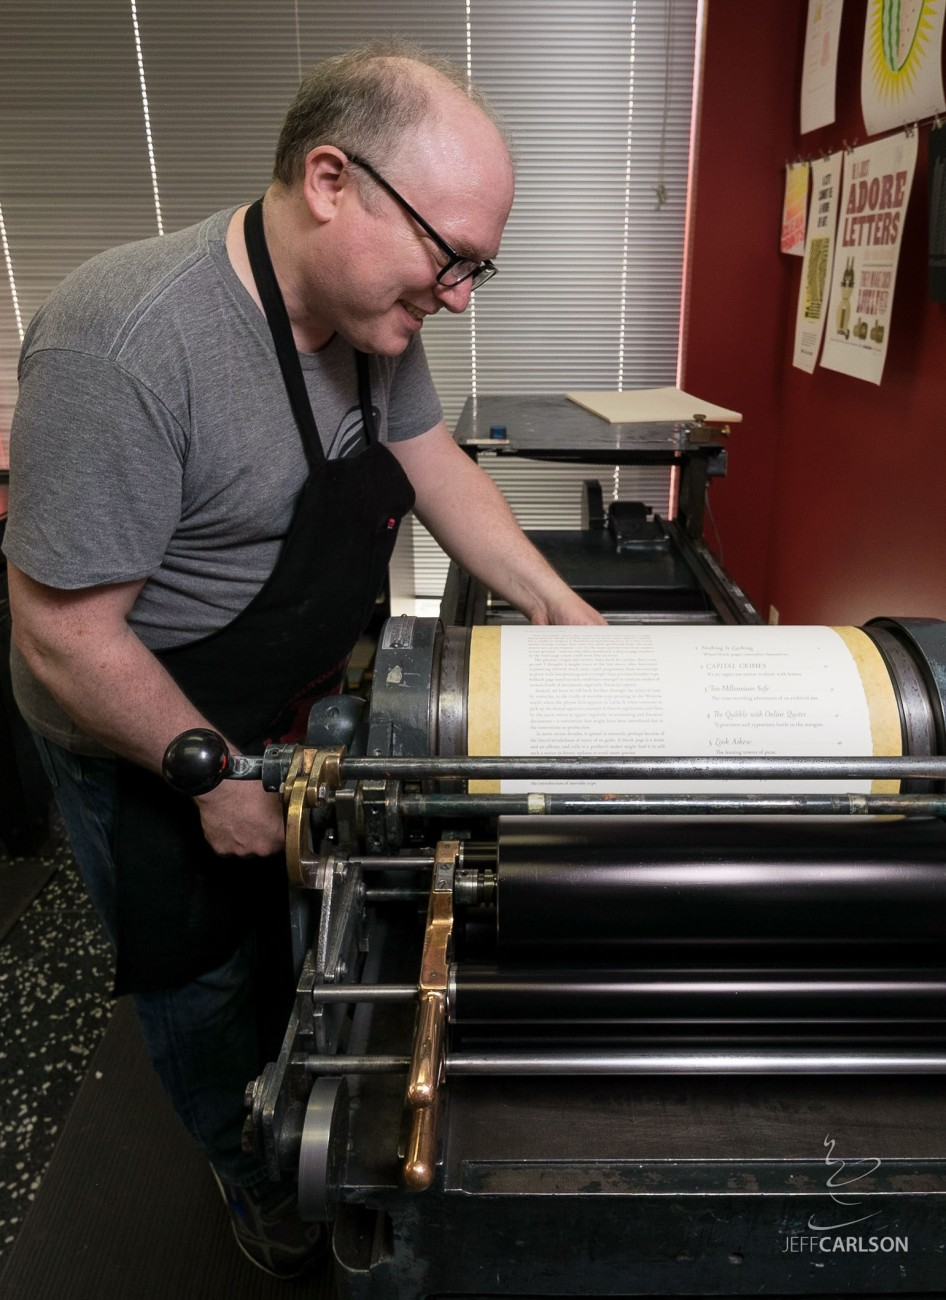 Fleishman cranks the print assembly across photopolymer plates to make an impression on a page.